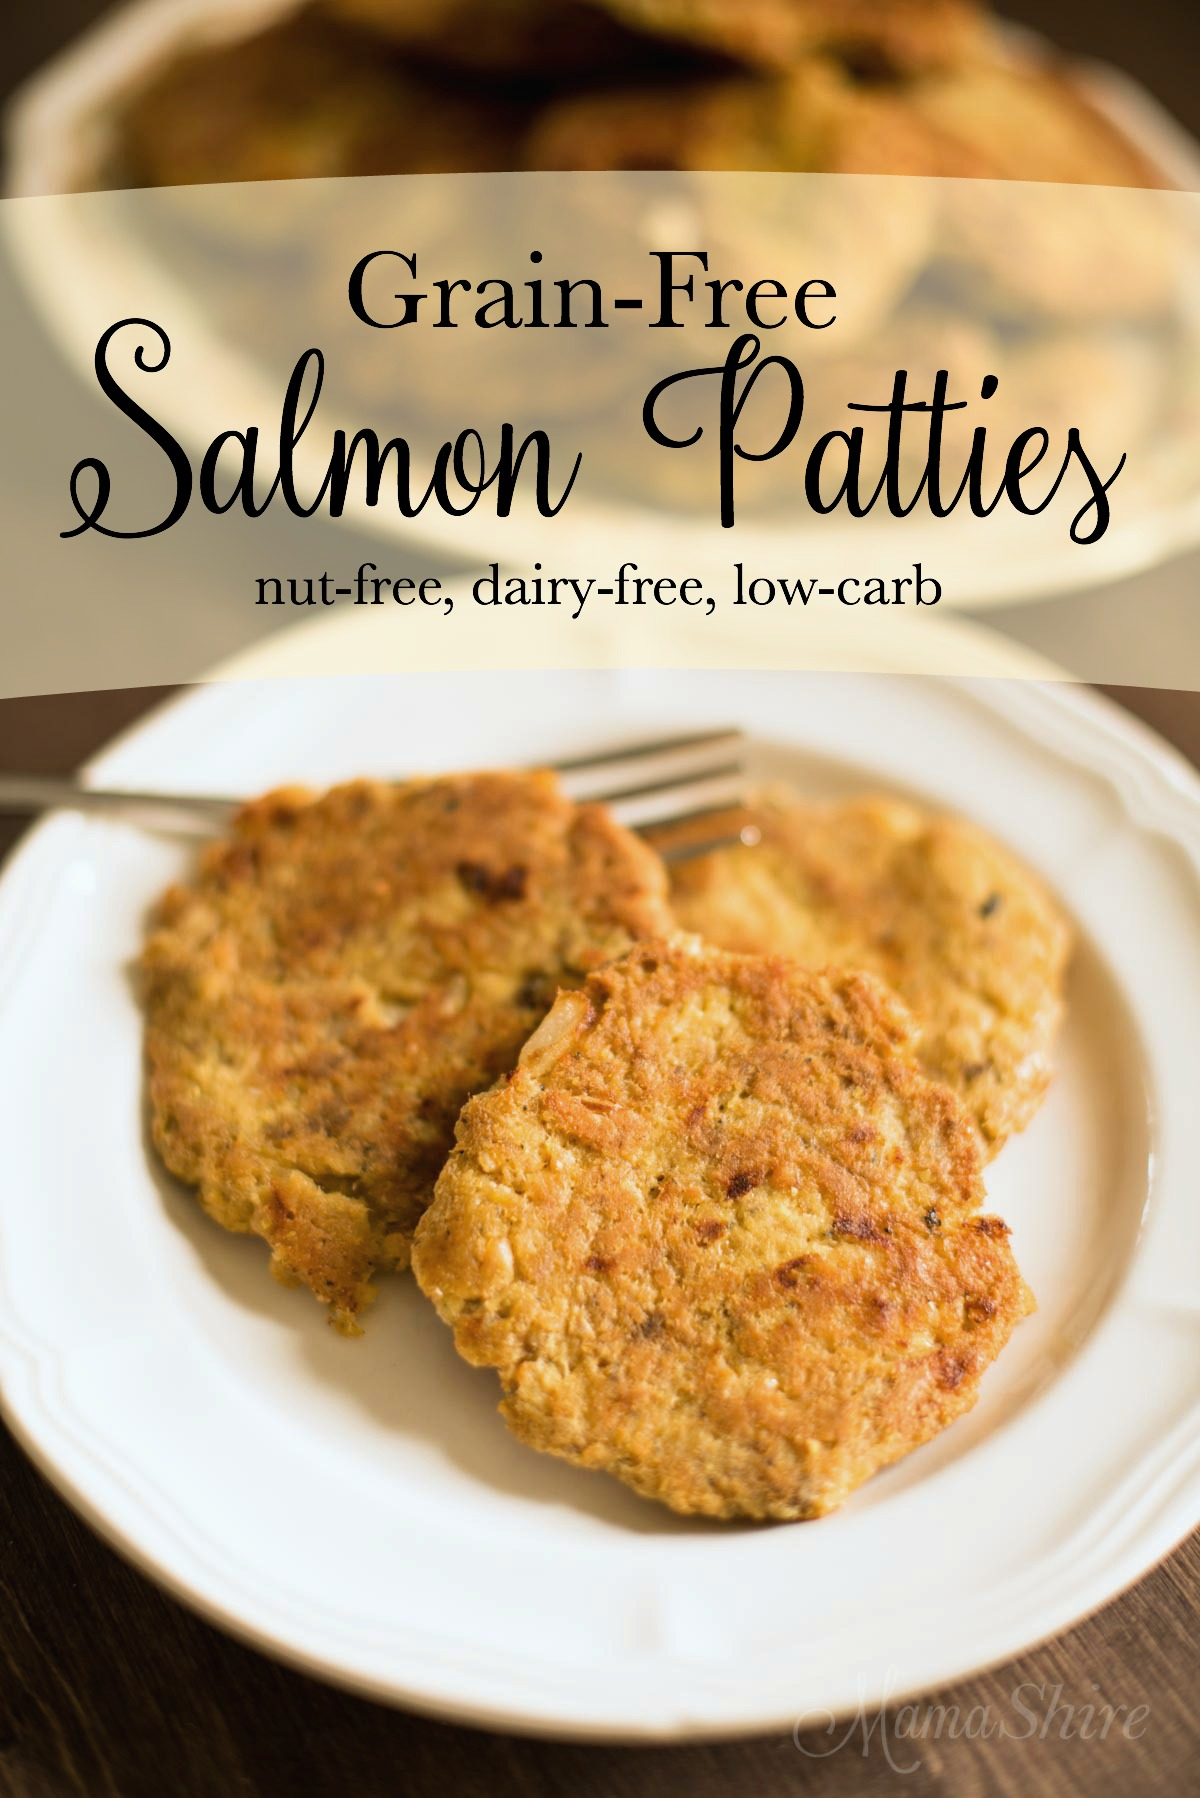 Grain-Free Salmon Patties - MamaShire.com